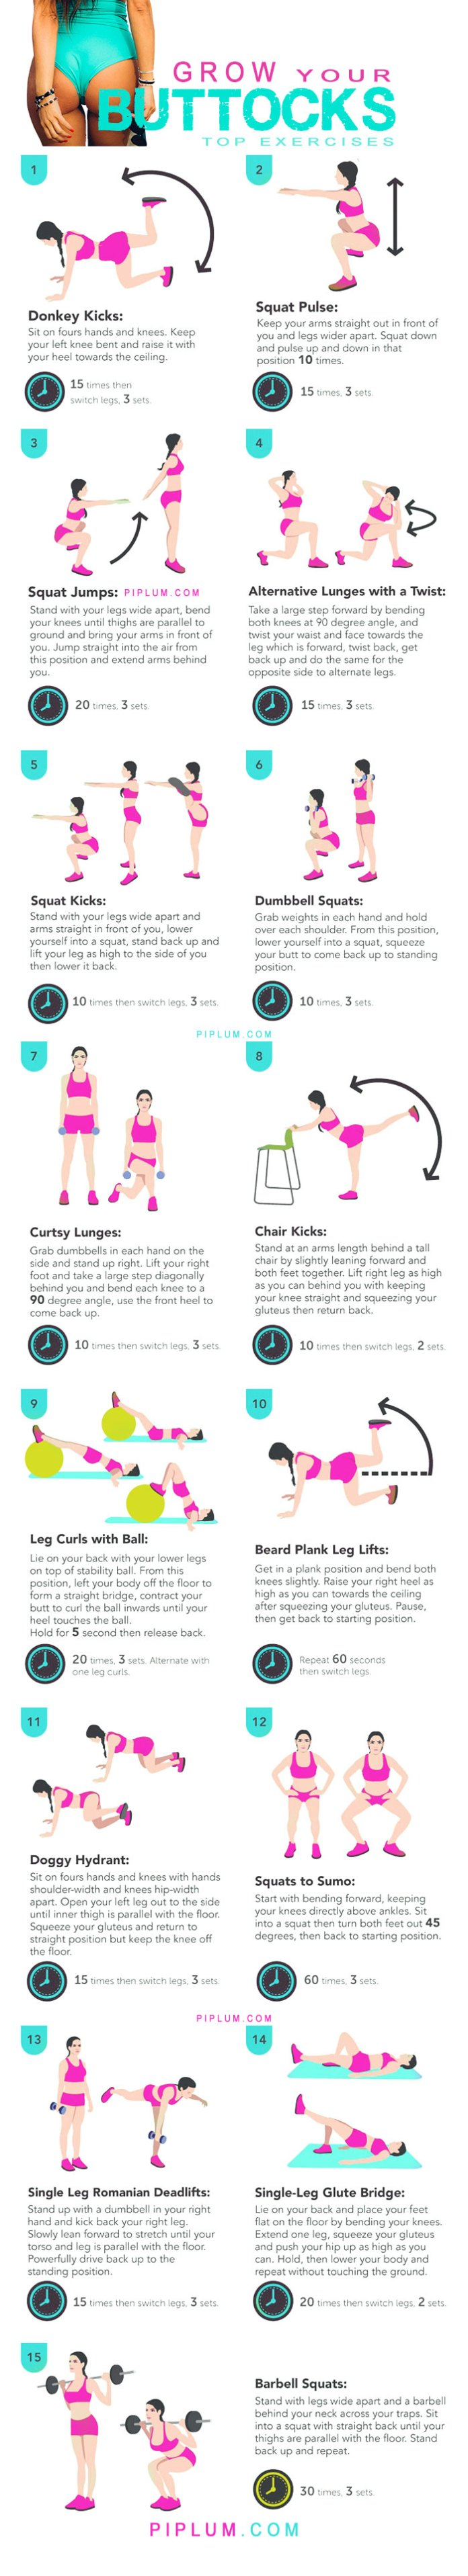 how-to-grow-butt-workout-exercises-butt-poster-infographic